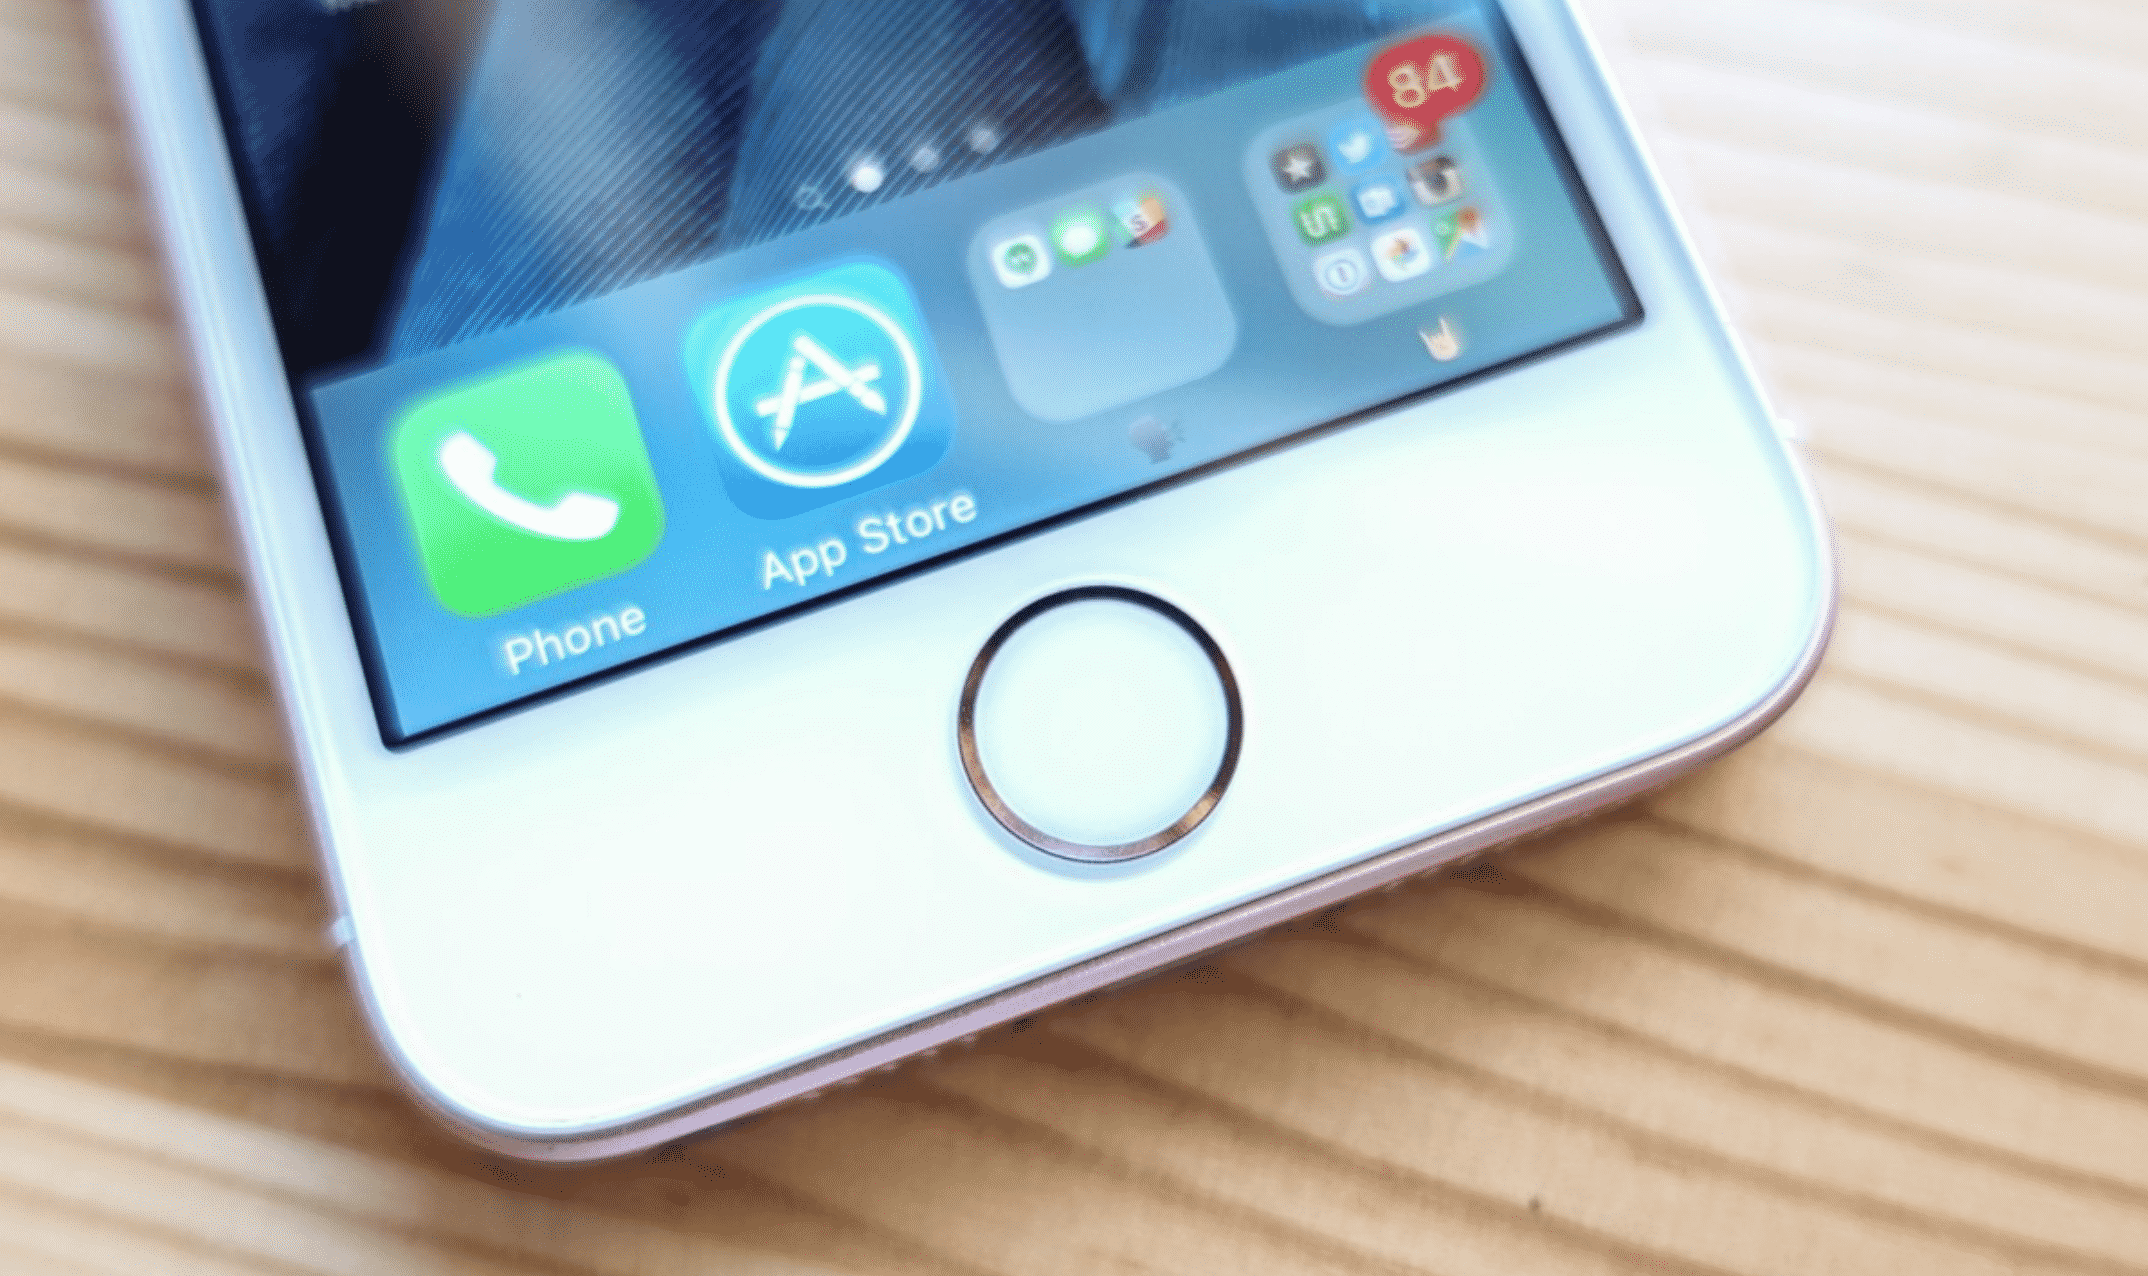 The court in Brazil Rules in Favor of Apple over iPhone Slowing